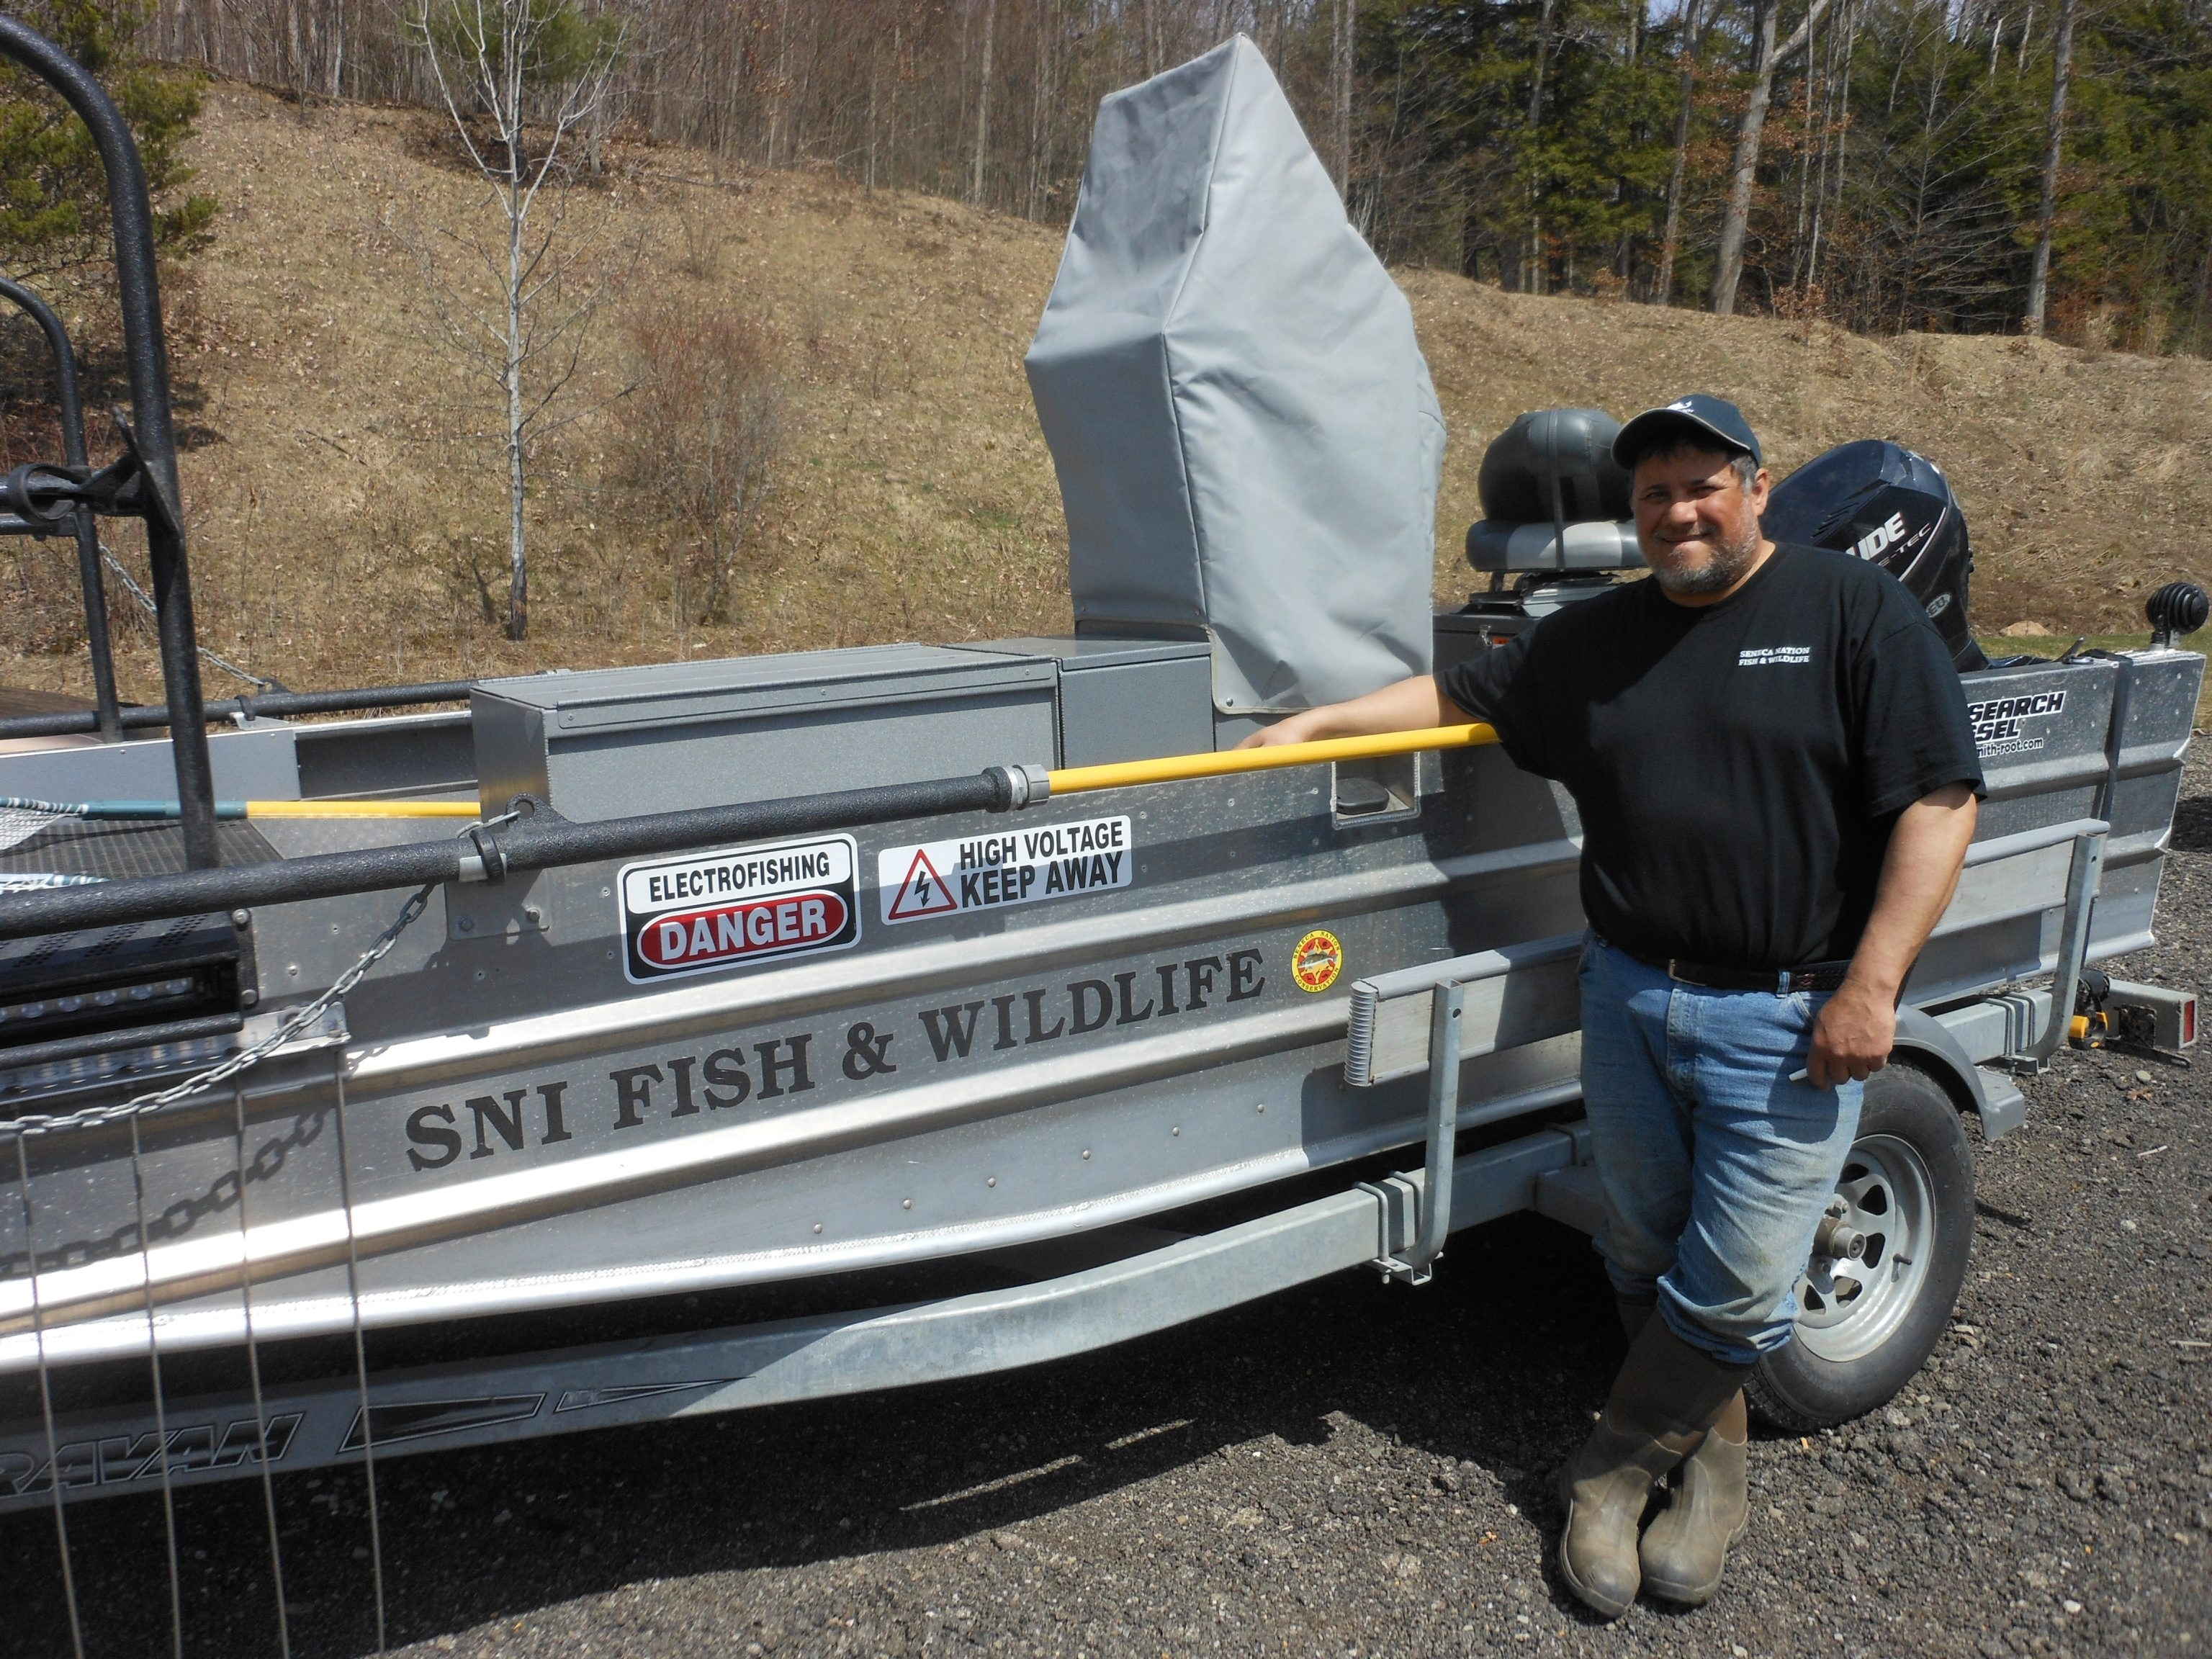 The Seneca Nation of Indians walleye restocking program successes serves as one of many positive outdoors outcomes in 2013.